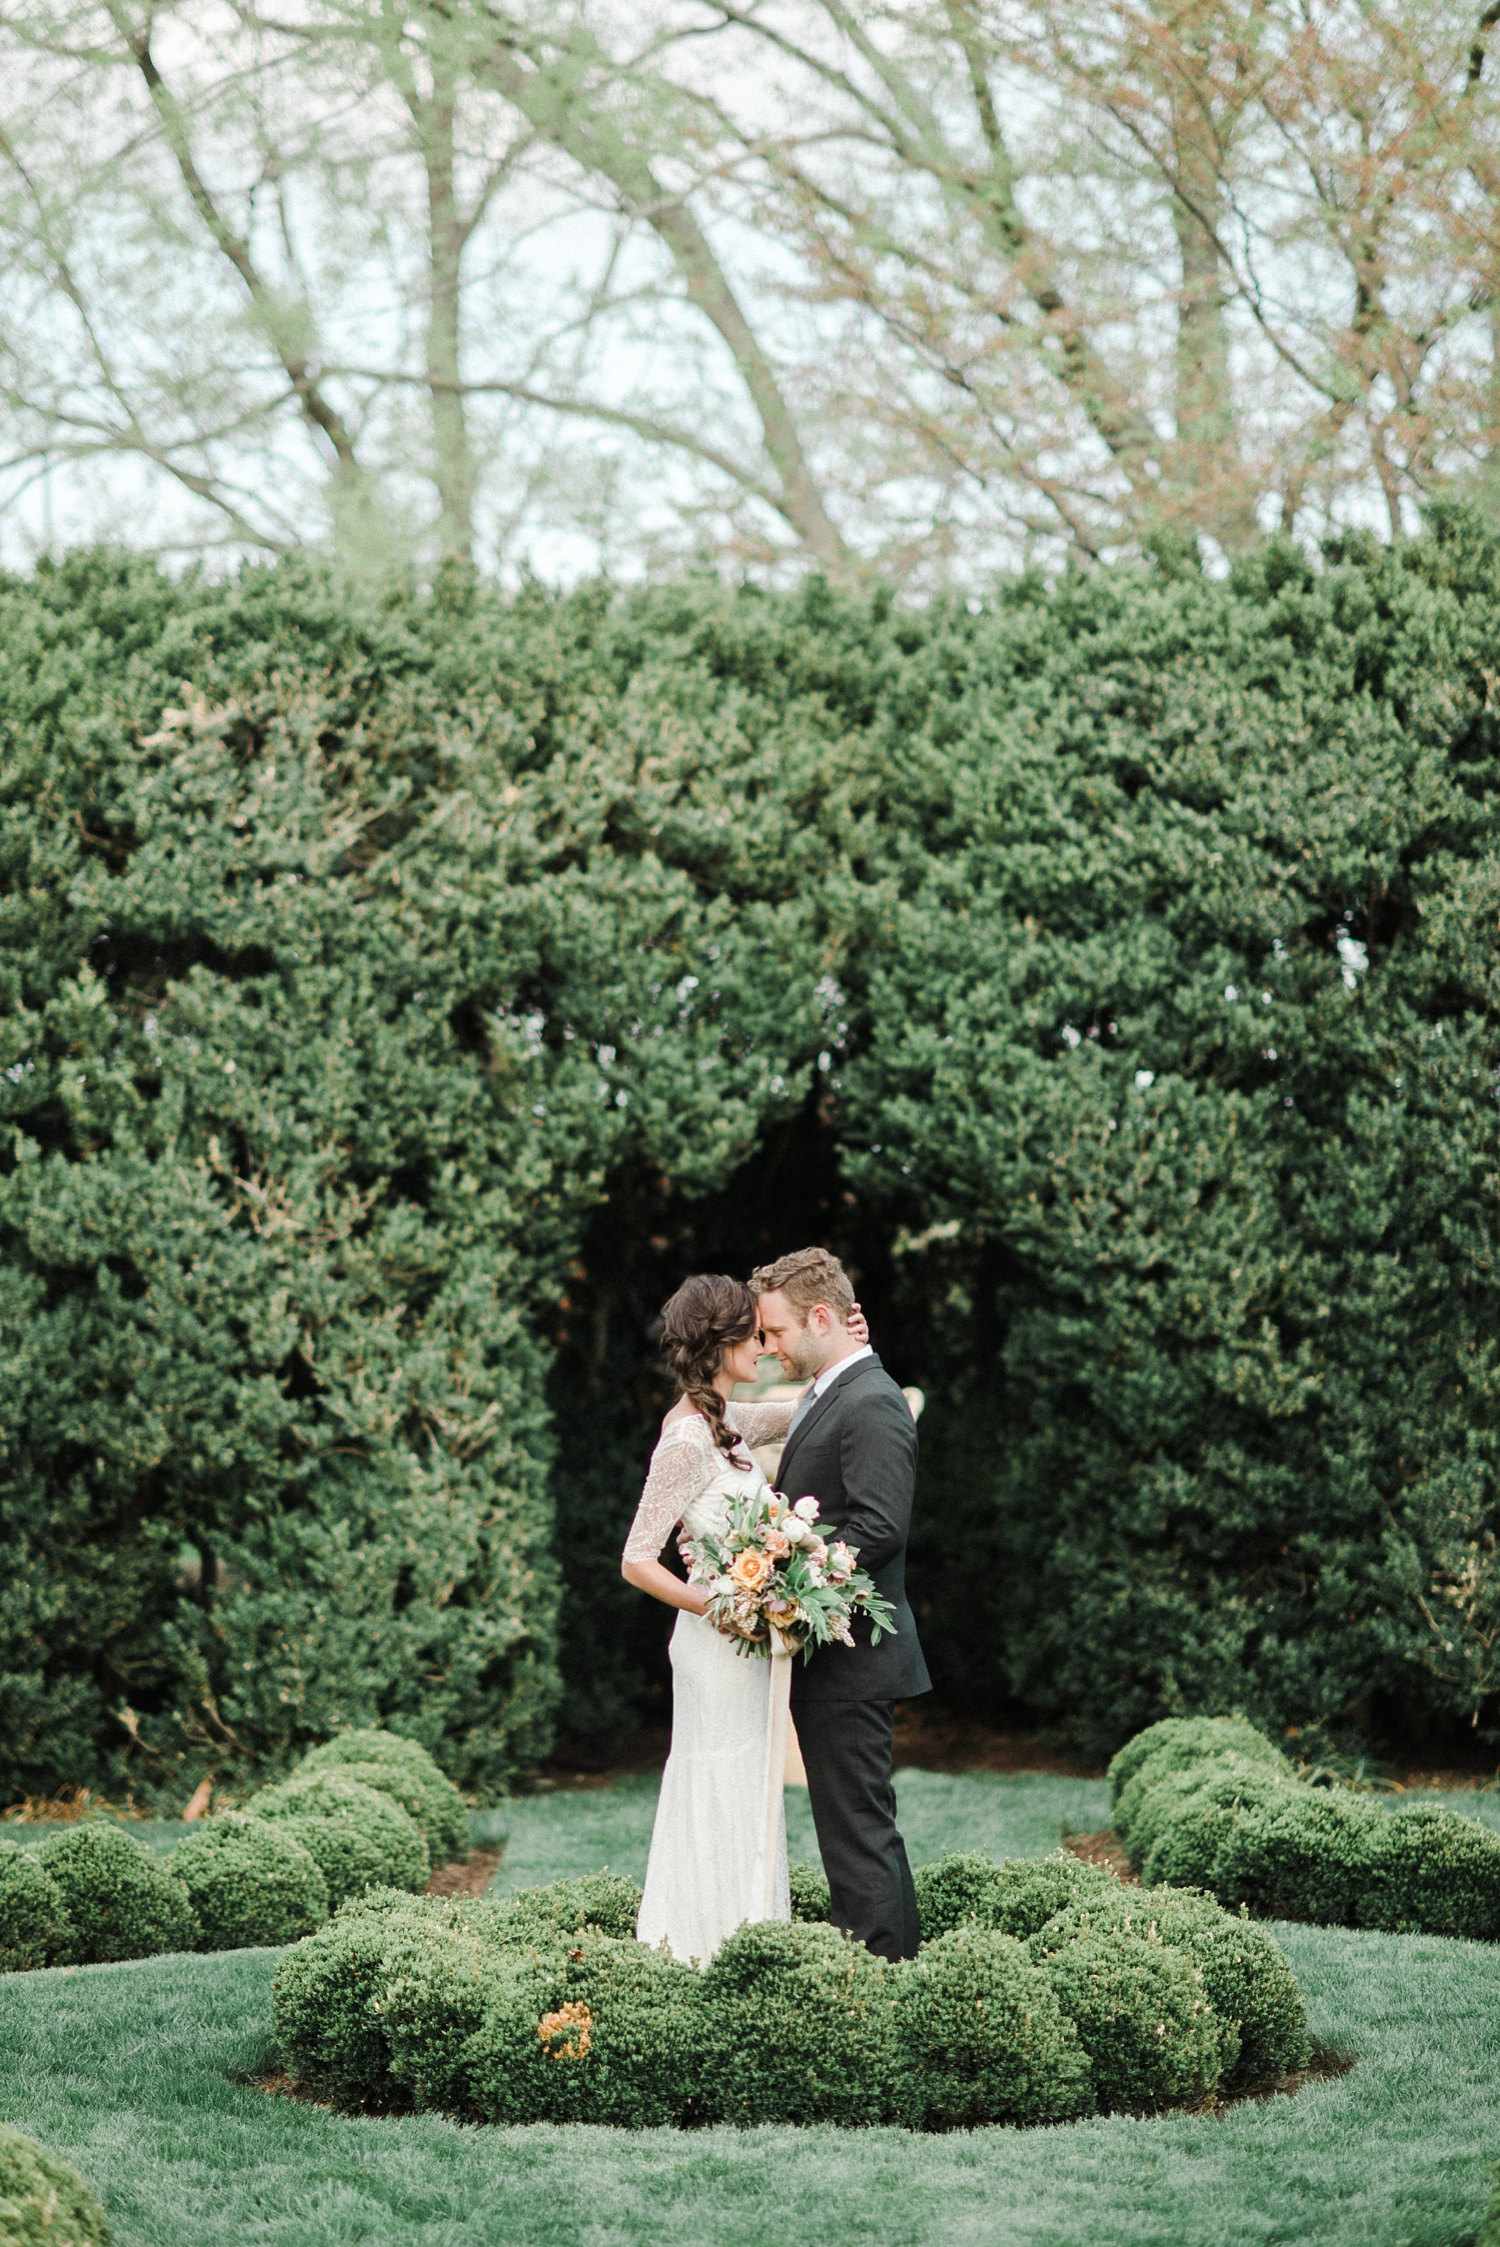 cottage_hill_herb_inspired_wedding_Oatlands_VA_wedding_Photographer_0047.jpg